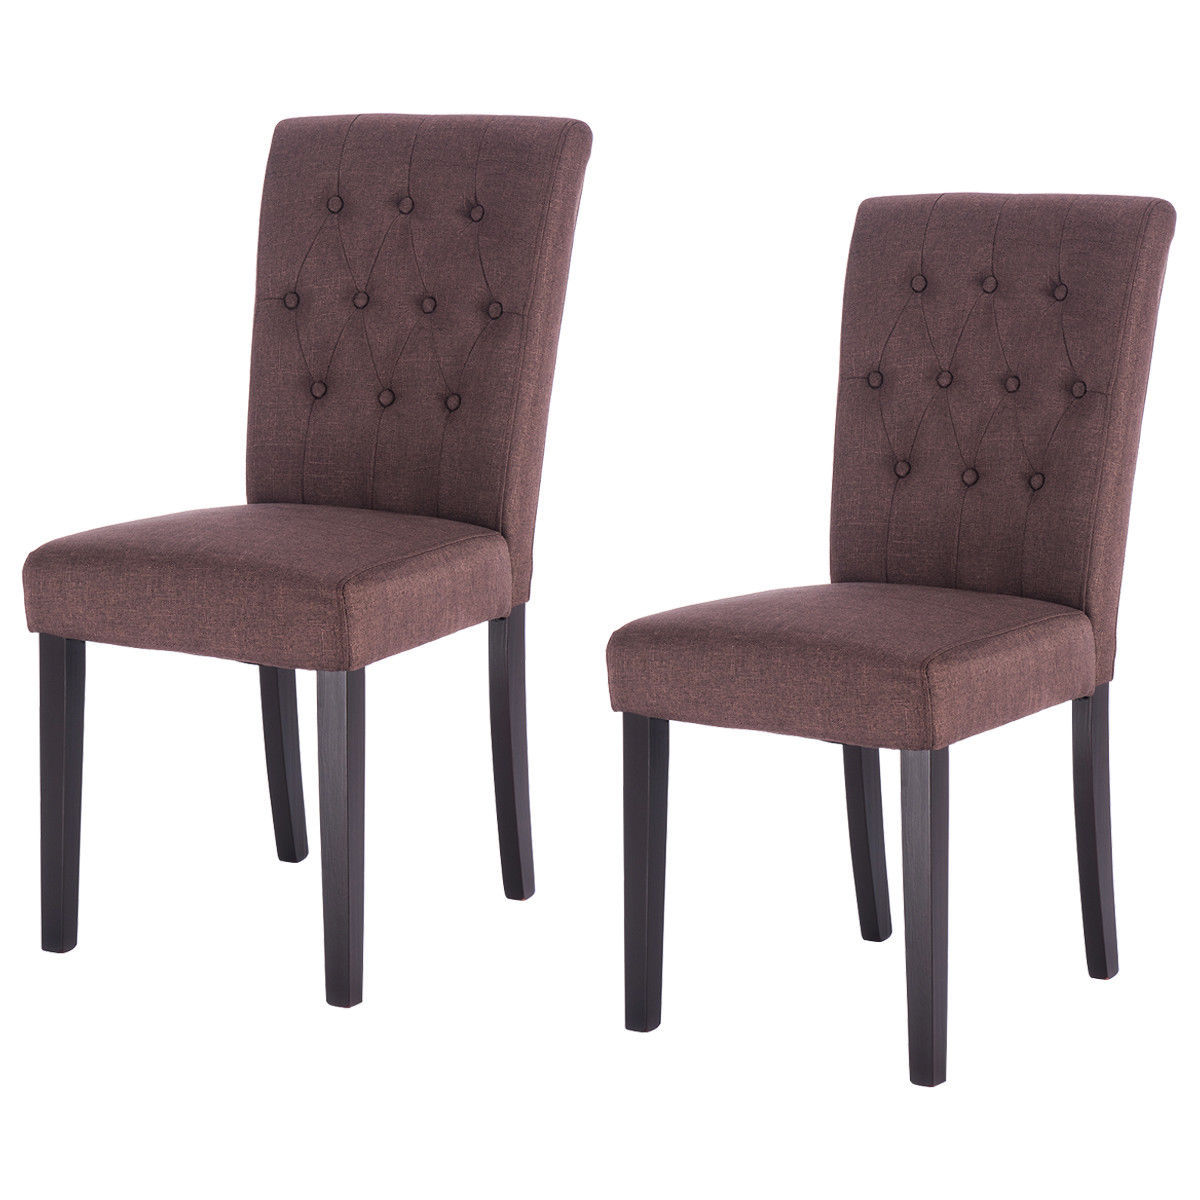 Giantex Set of 2 Modern Dining Chair Fabric Armless Accent Tufted Upholstered with Solid Wood Legs Furniture HW52778BN все цены